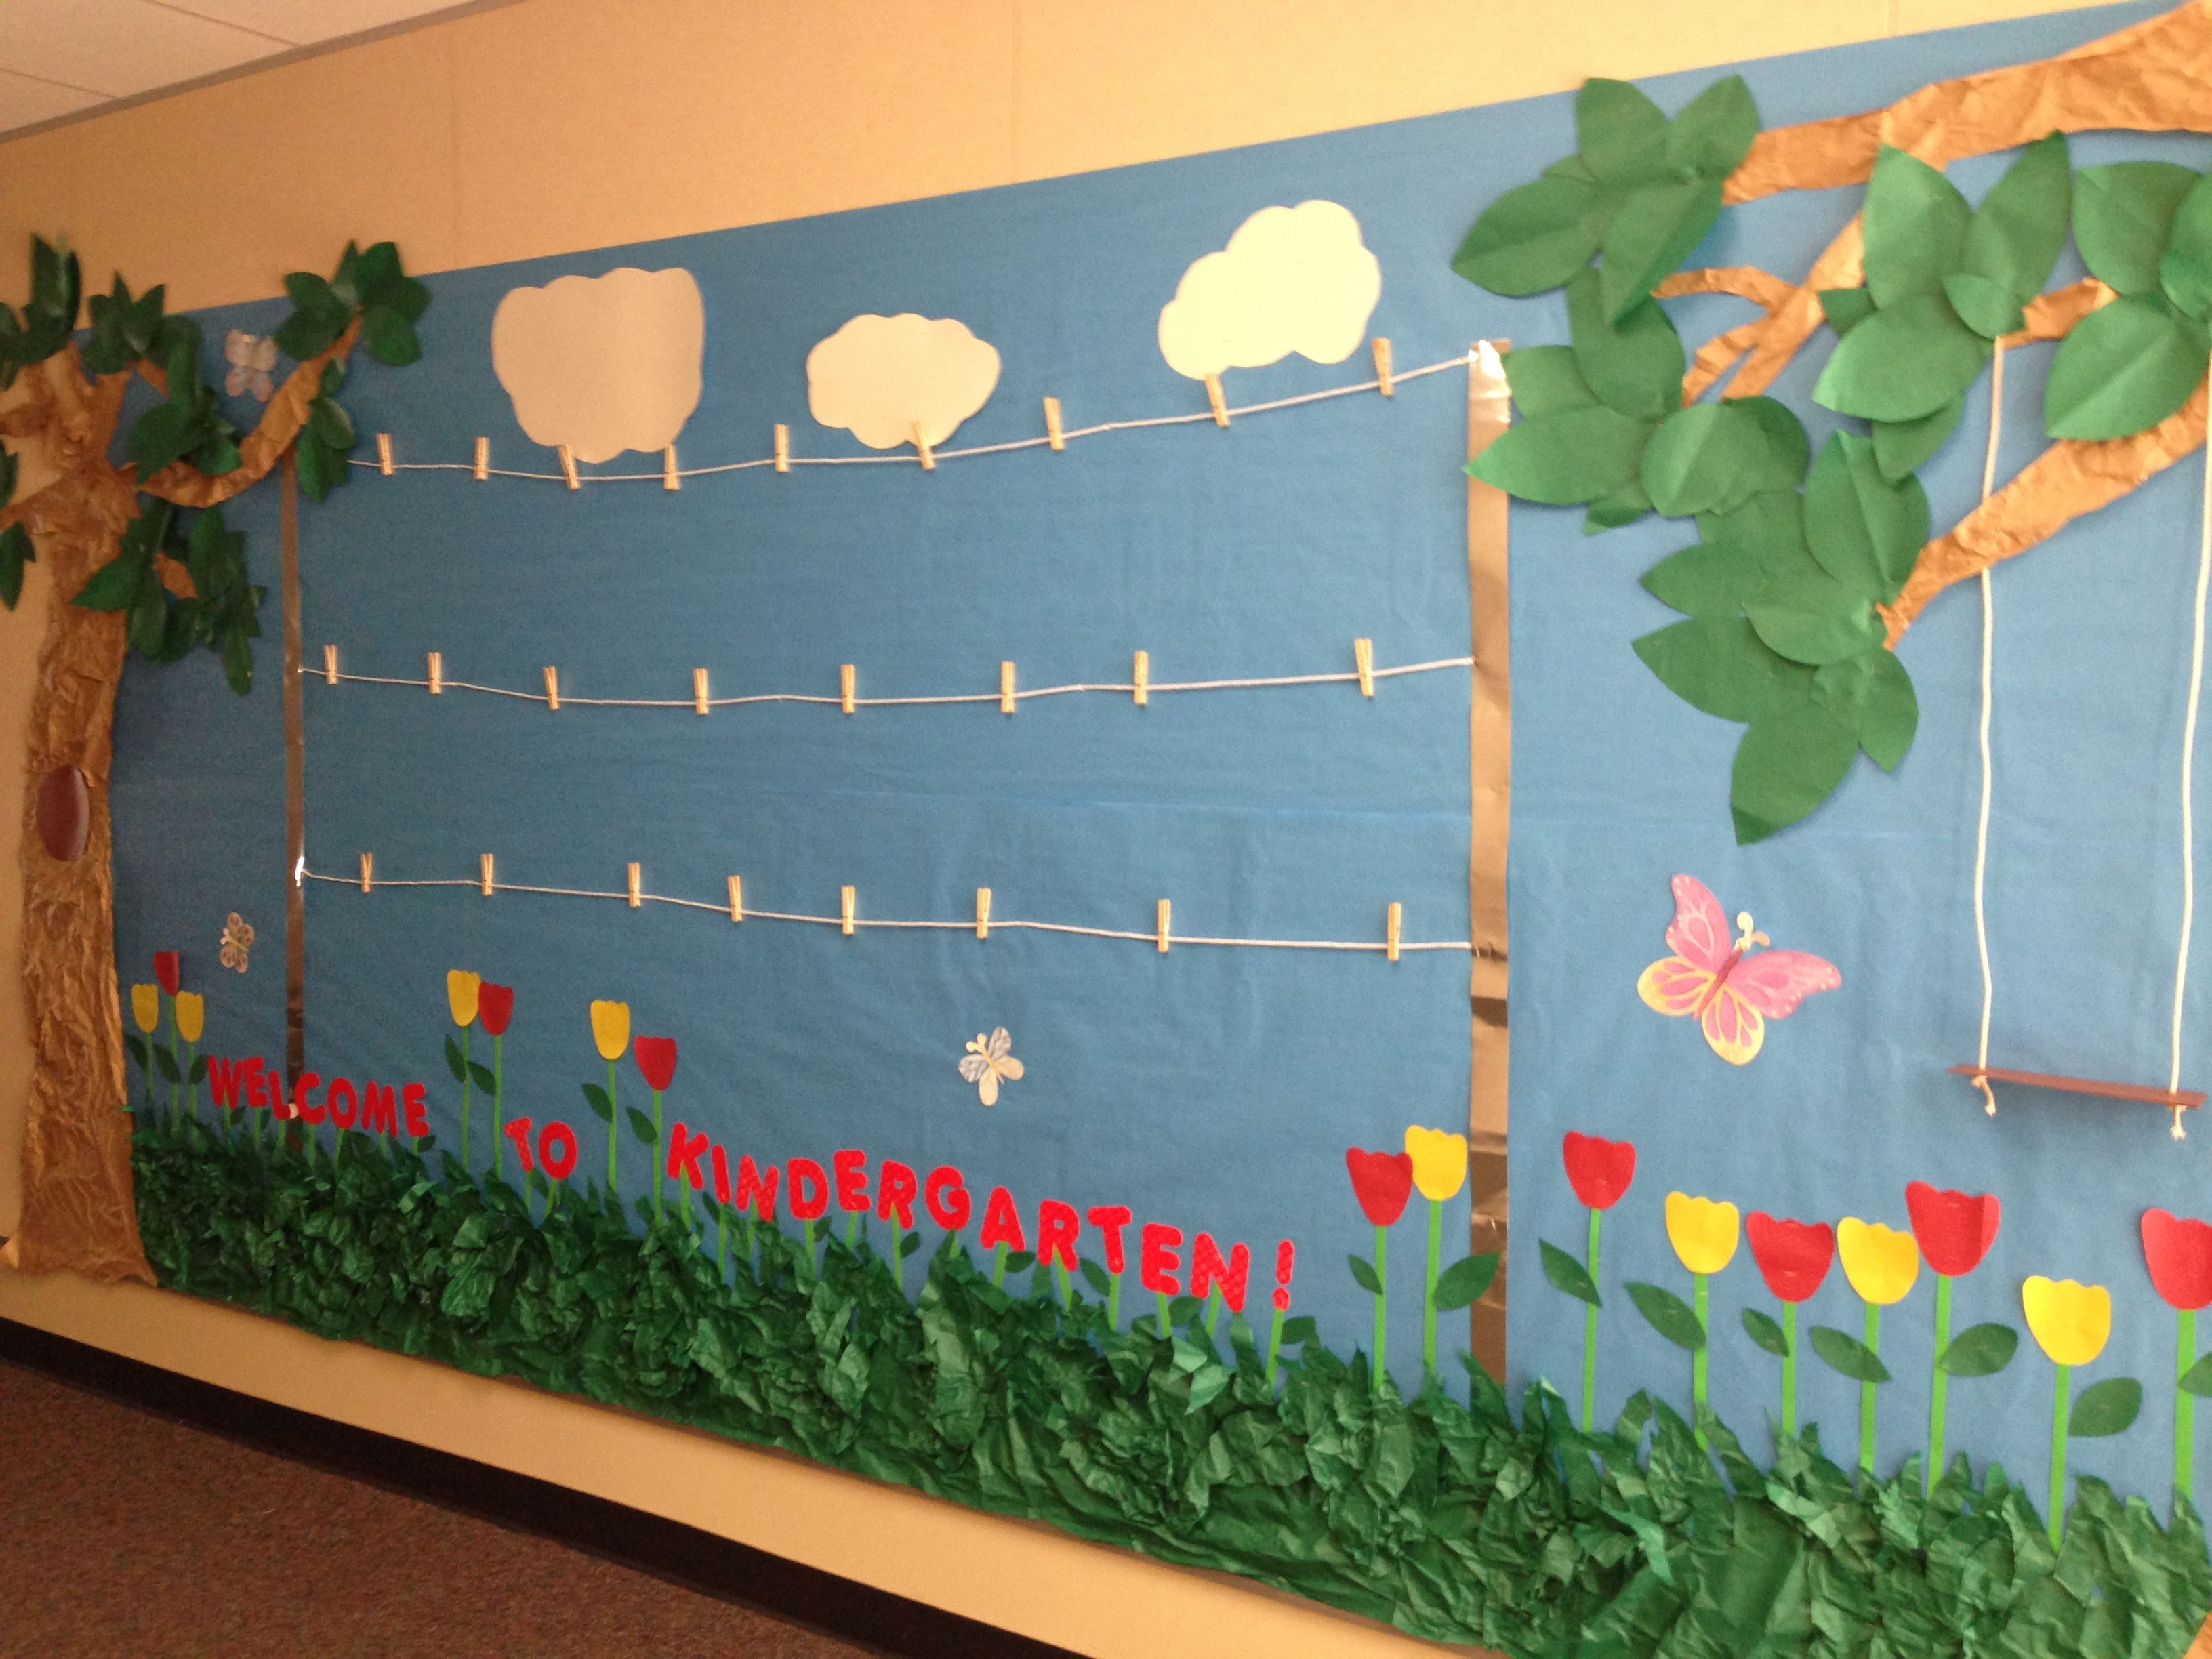 The Kids Clothesline Garden Theme Bulletin Boardi Have The Clothesline To Display The